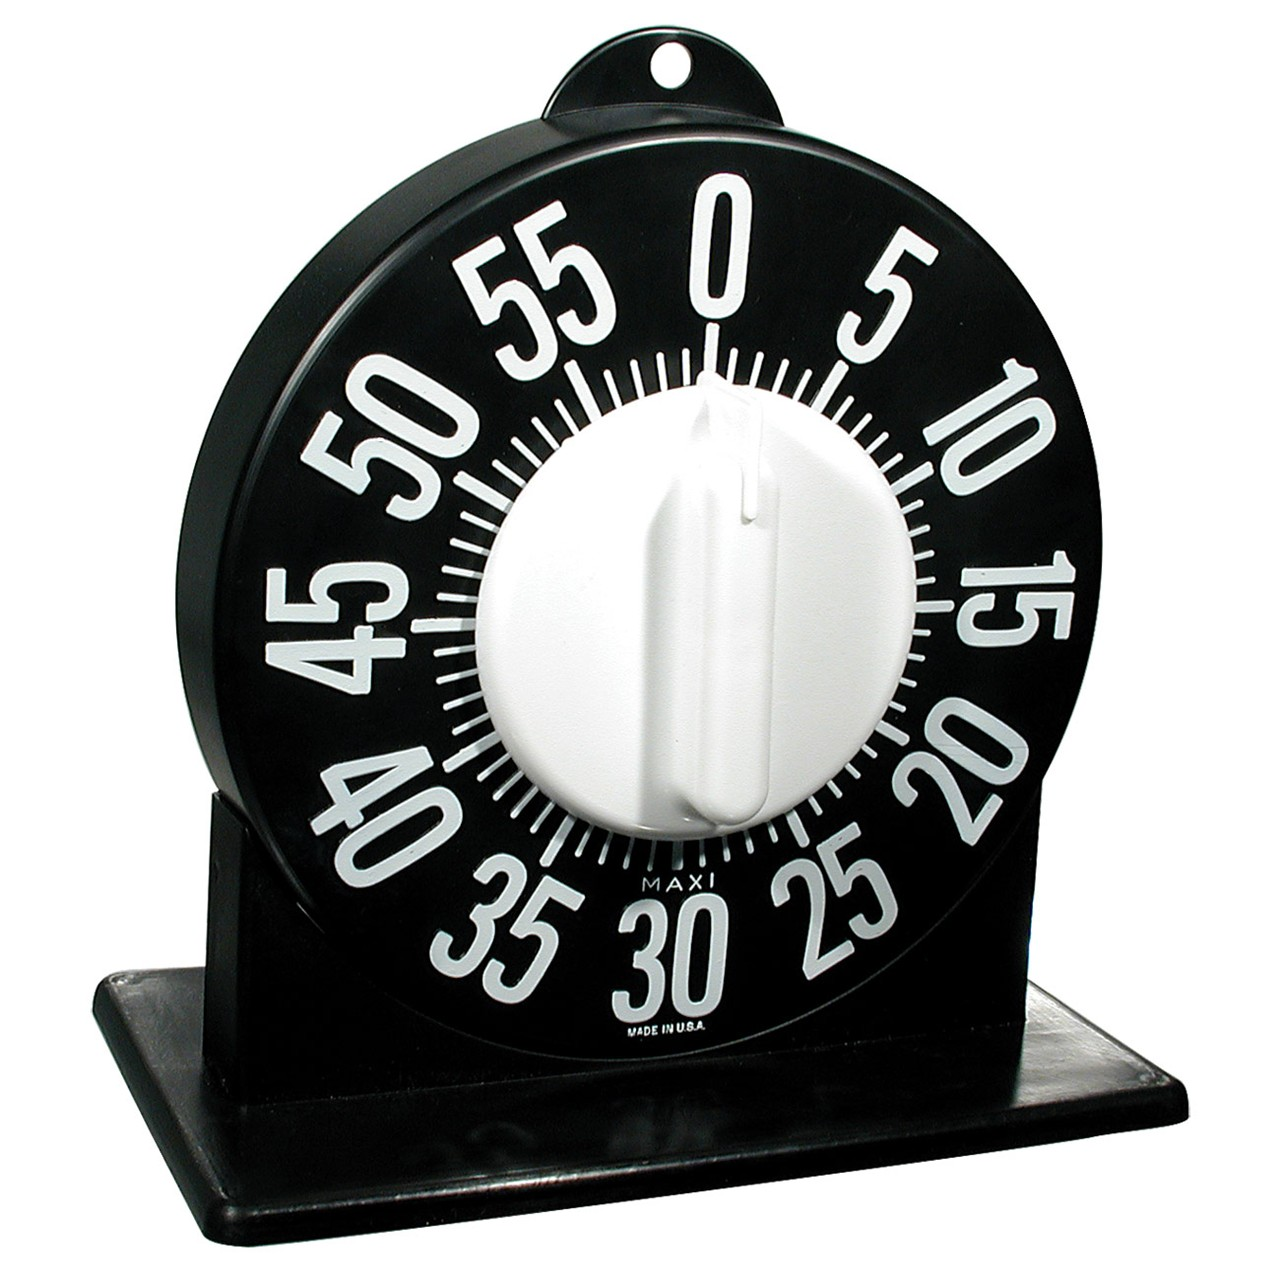 Tactile Long Ring Low Vision Timer With Stand - Black Dial